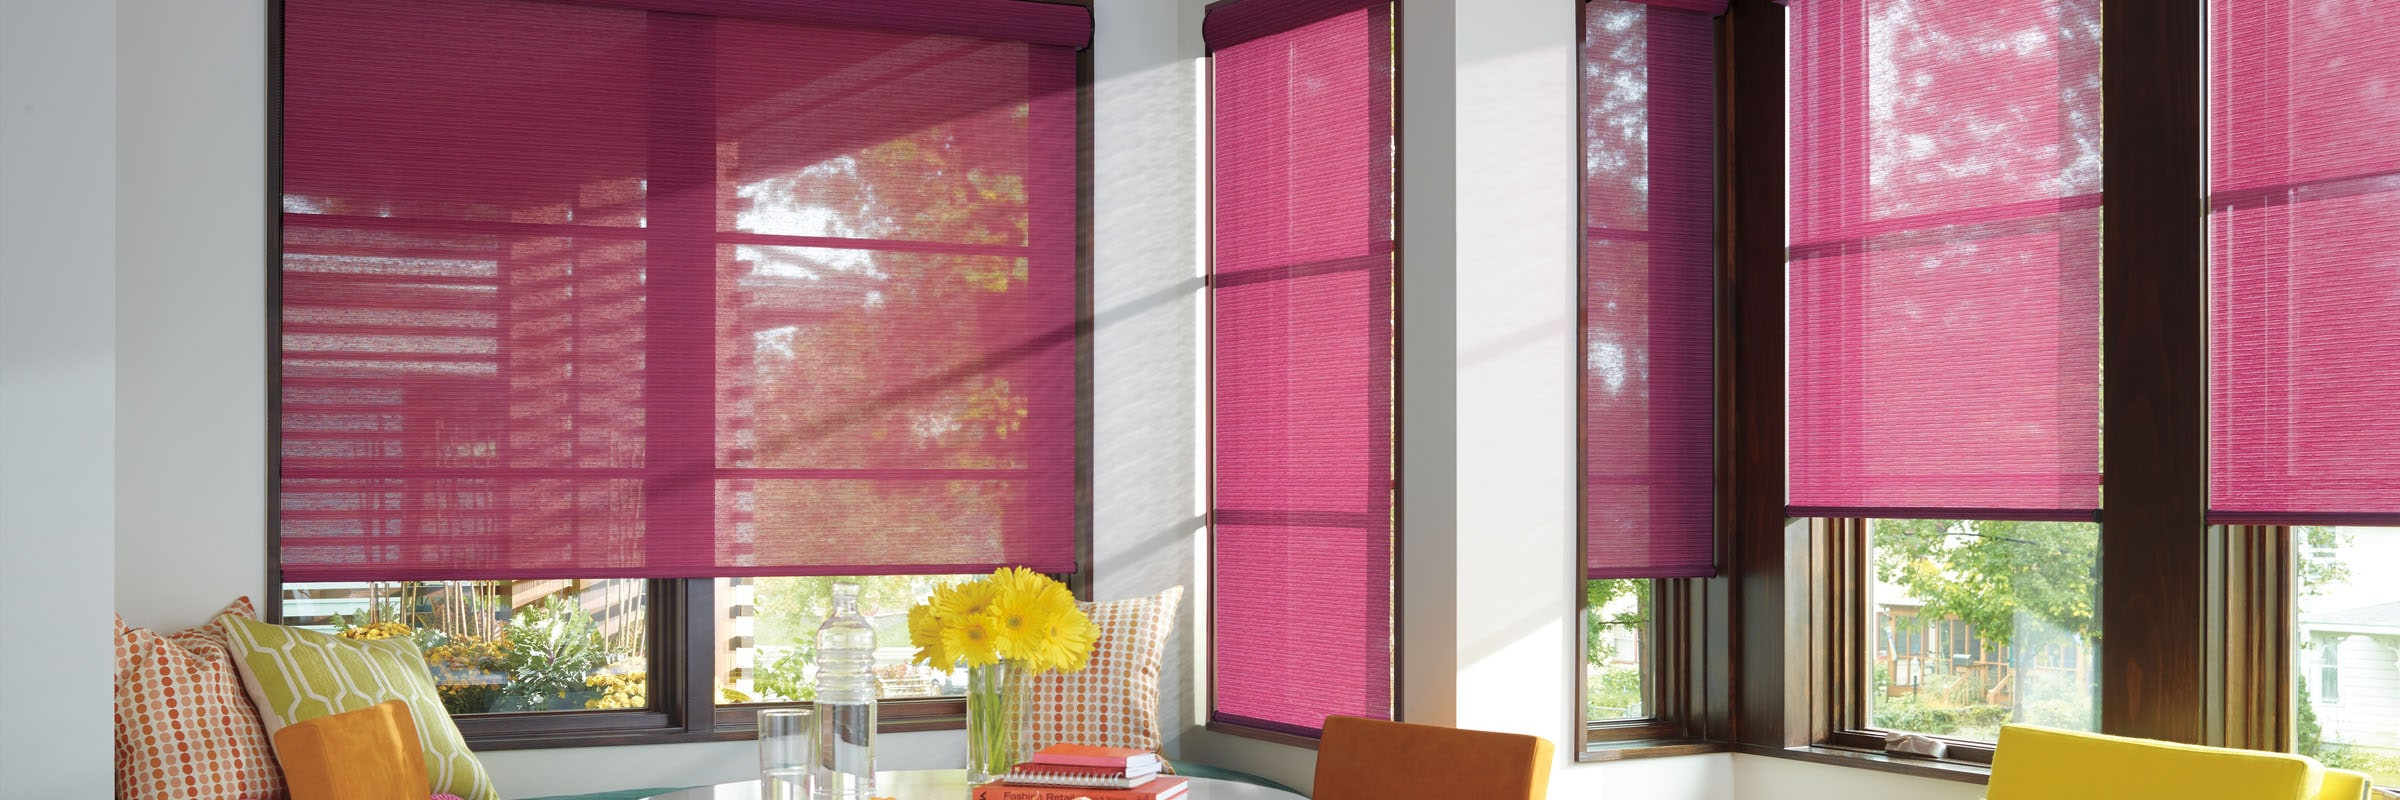 af fabric roller cover colourful blinds window